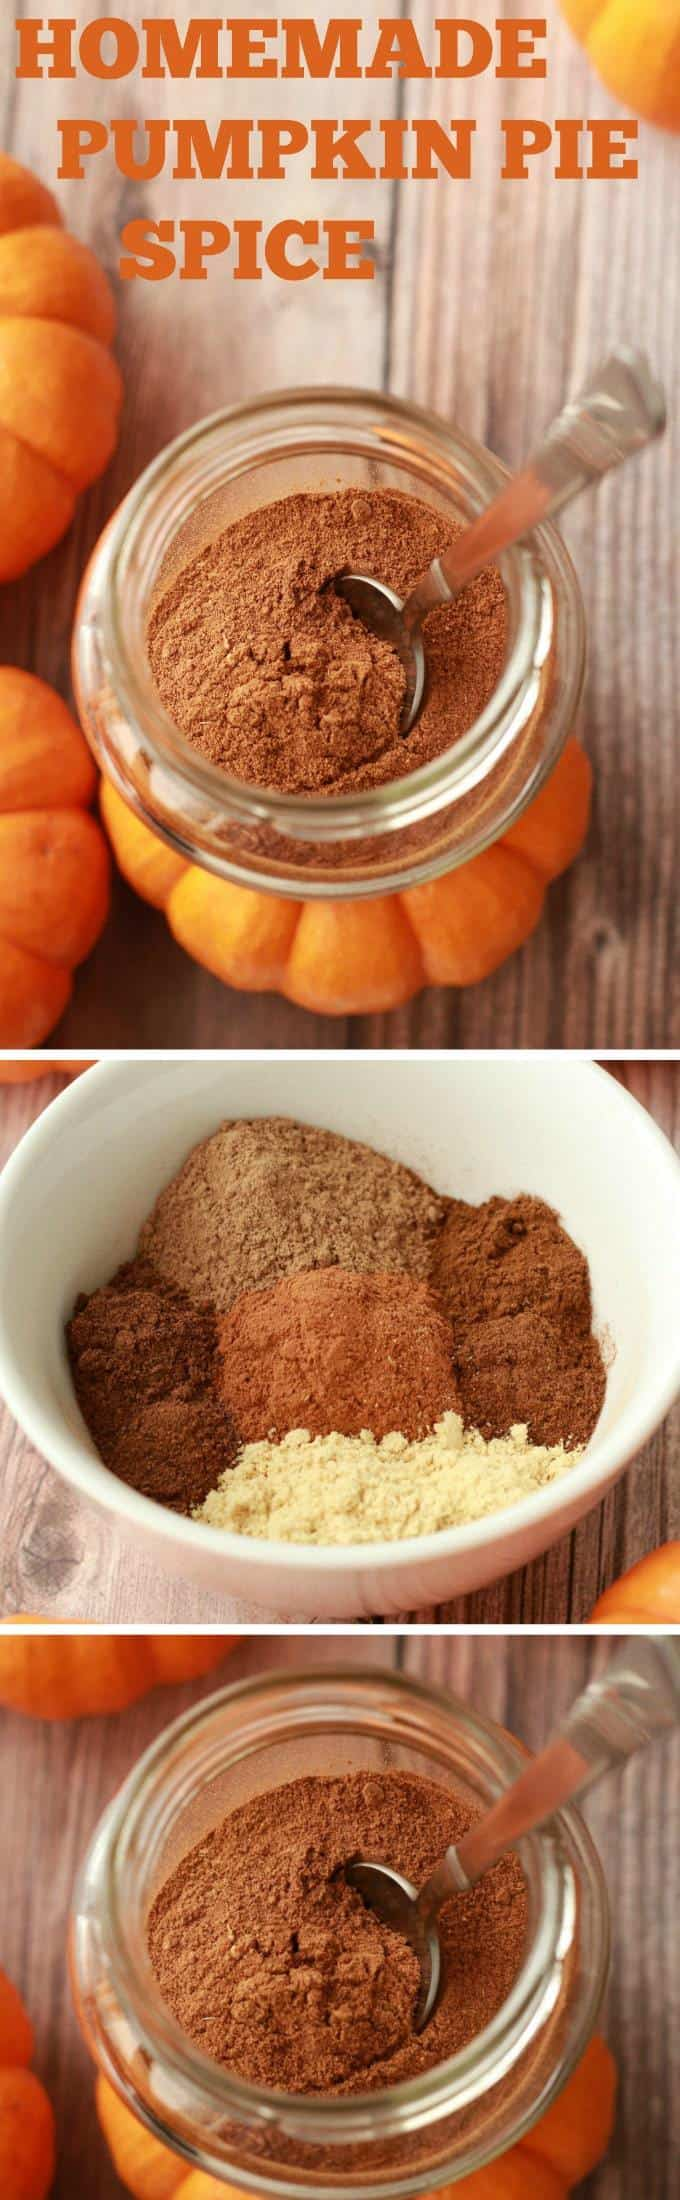 Pumpkin Pie Spice Recipe - Delicious blend of 5 spices perfect for all your pumpkin recipes! #vegan #lovingitvegan #pumpkinpie #spice